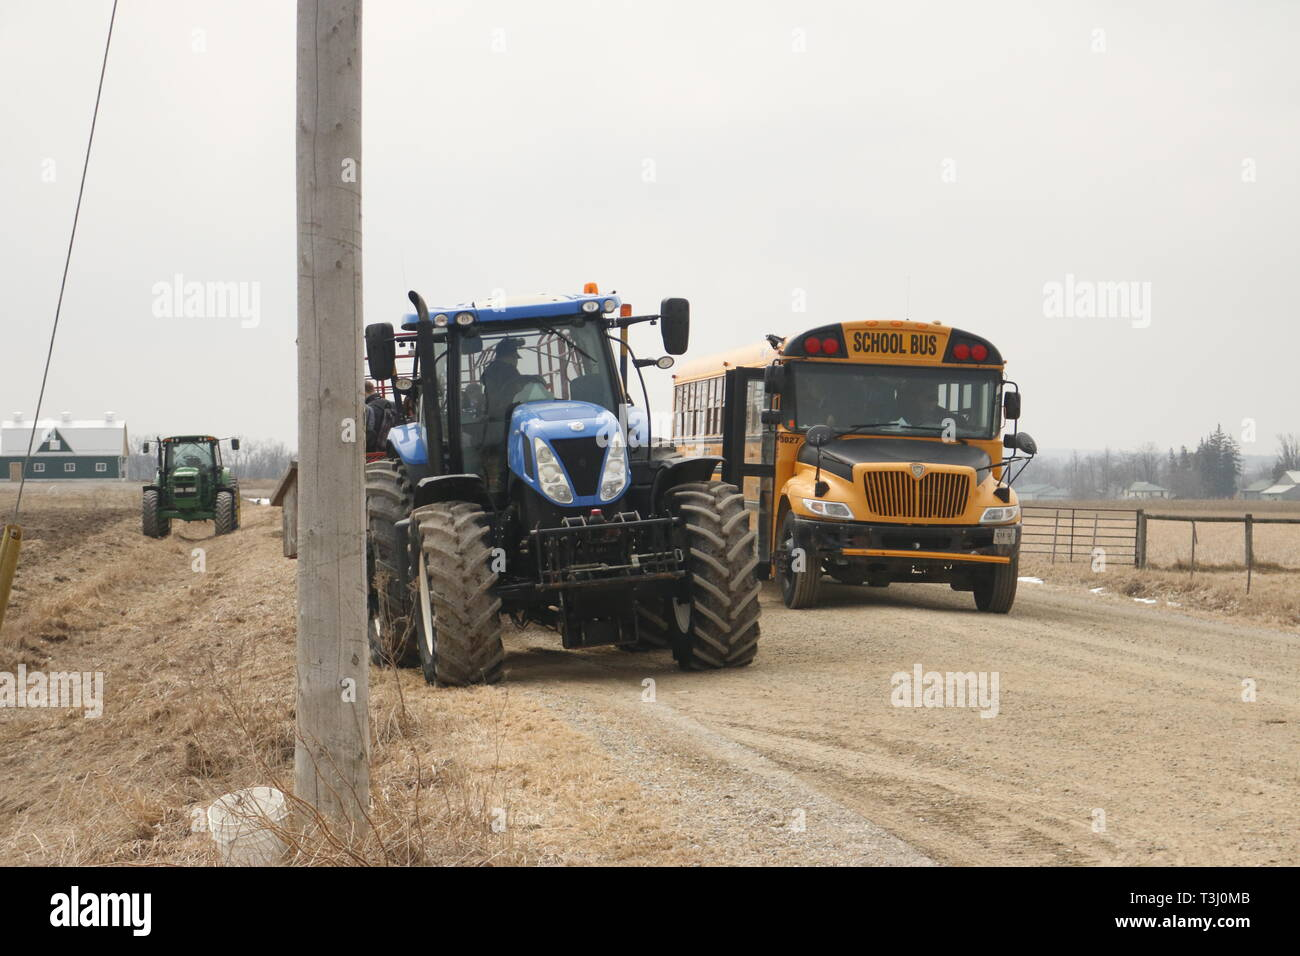 April 06 2019, Elmira Canada: Editorial photo of a school bus driving by a tractor. Elmira is known for their high Mennonite population mixed with - Stock Image